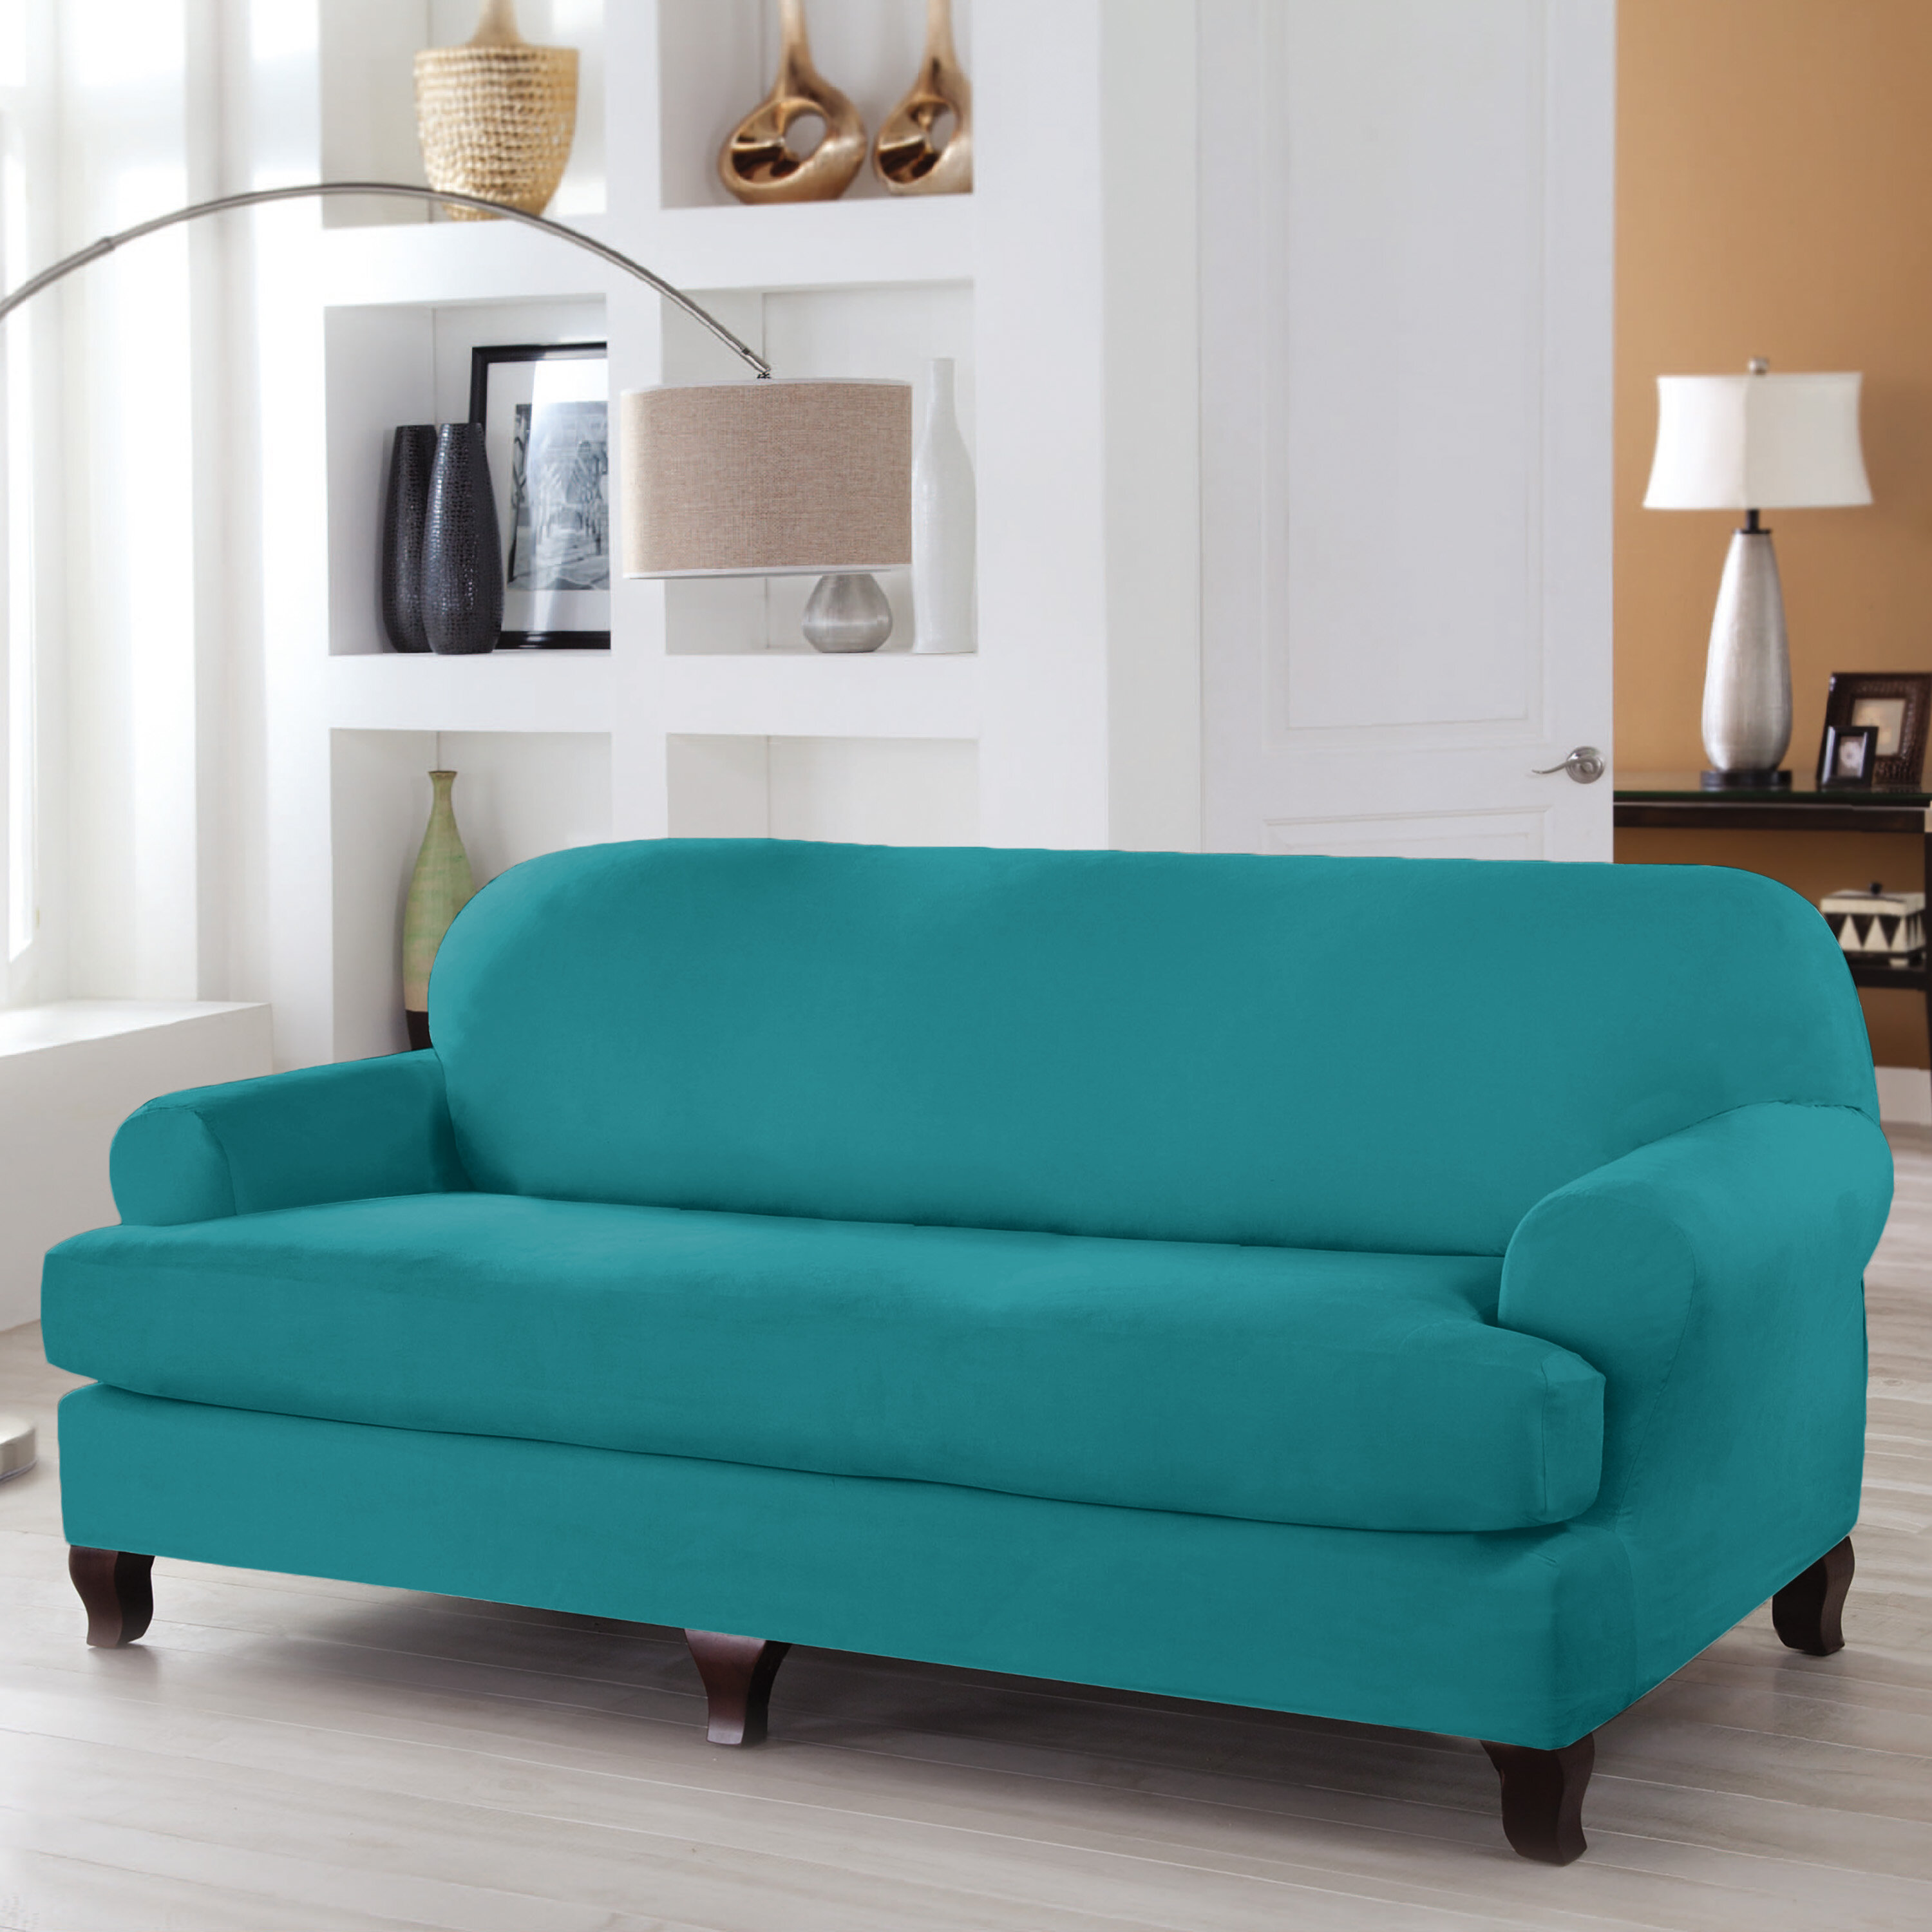 Wondrous Serta Stretch Fit T Cushion Sofa Slipcover Onthecornerstone Fun Painted Chair Ideas Images Onthecornerstoneorg